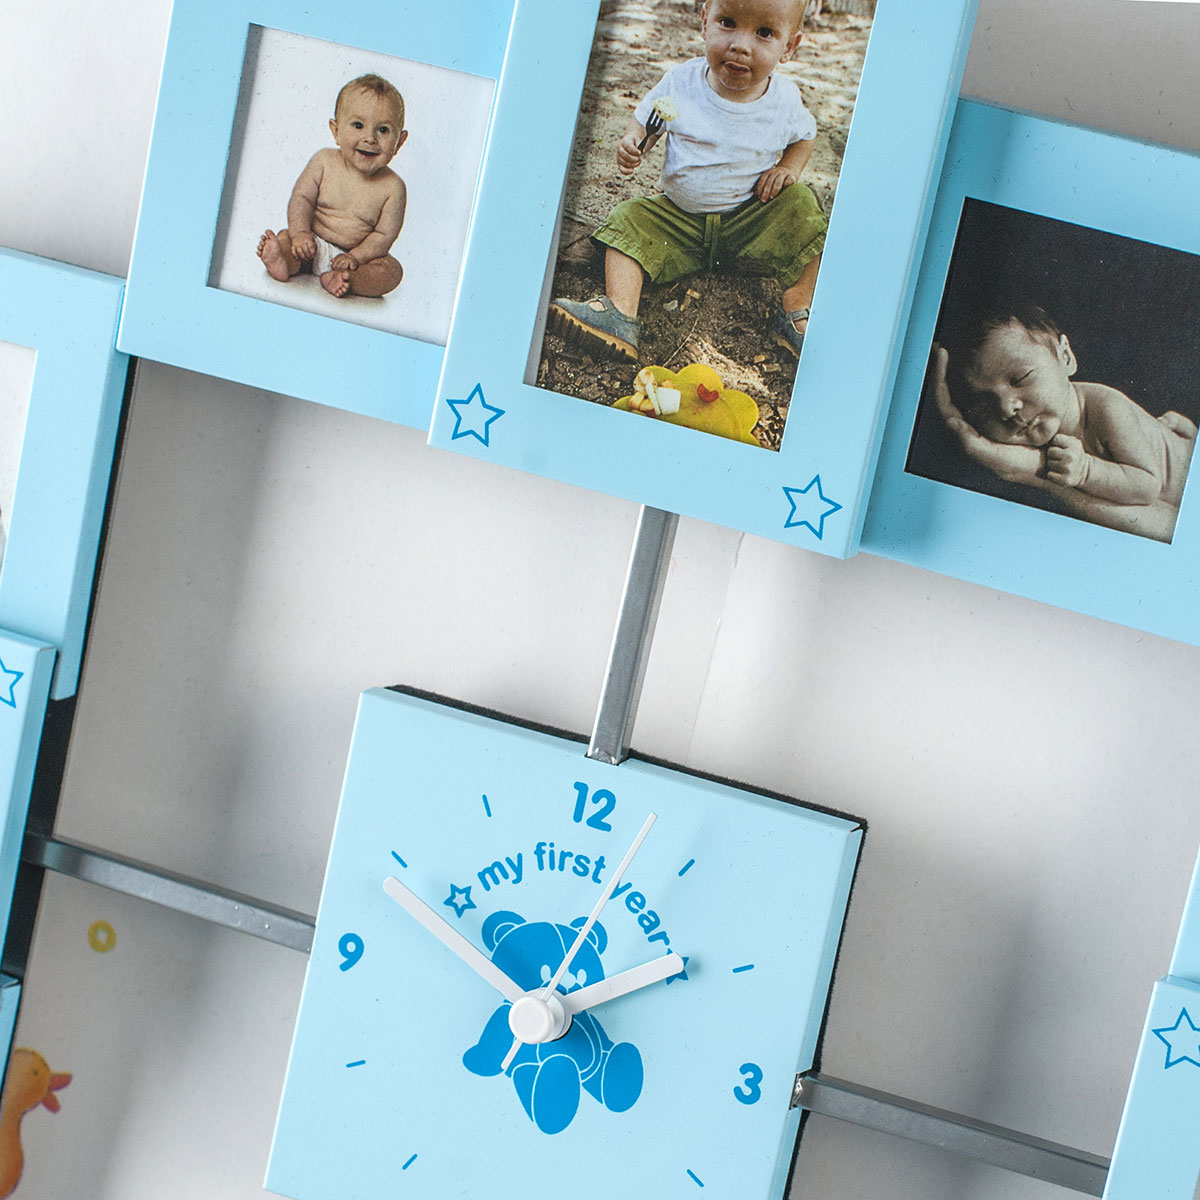 Baby Gifts Next Day Delivery Uk : My first year collage clock for baby boys gifts by